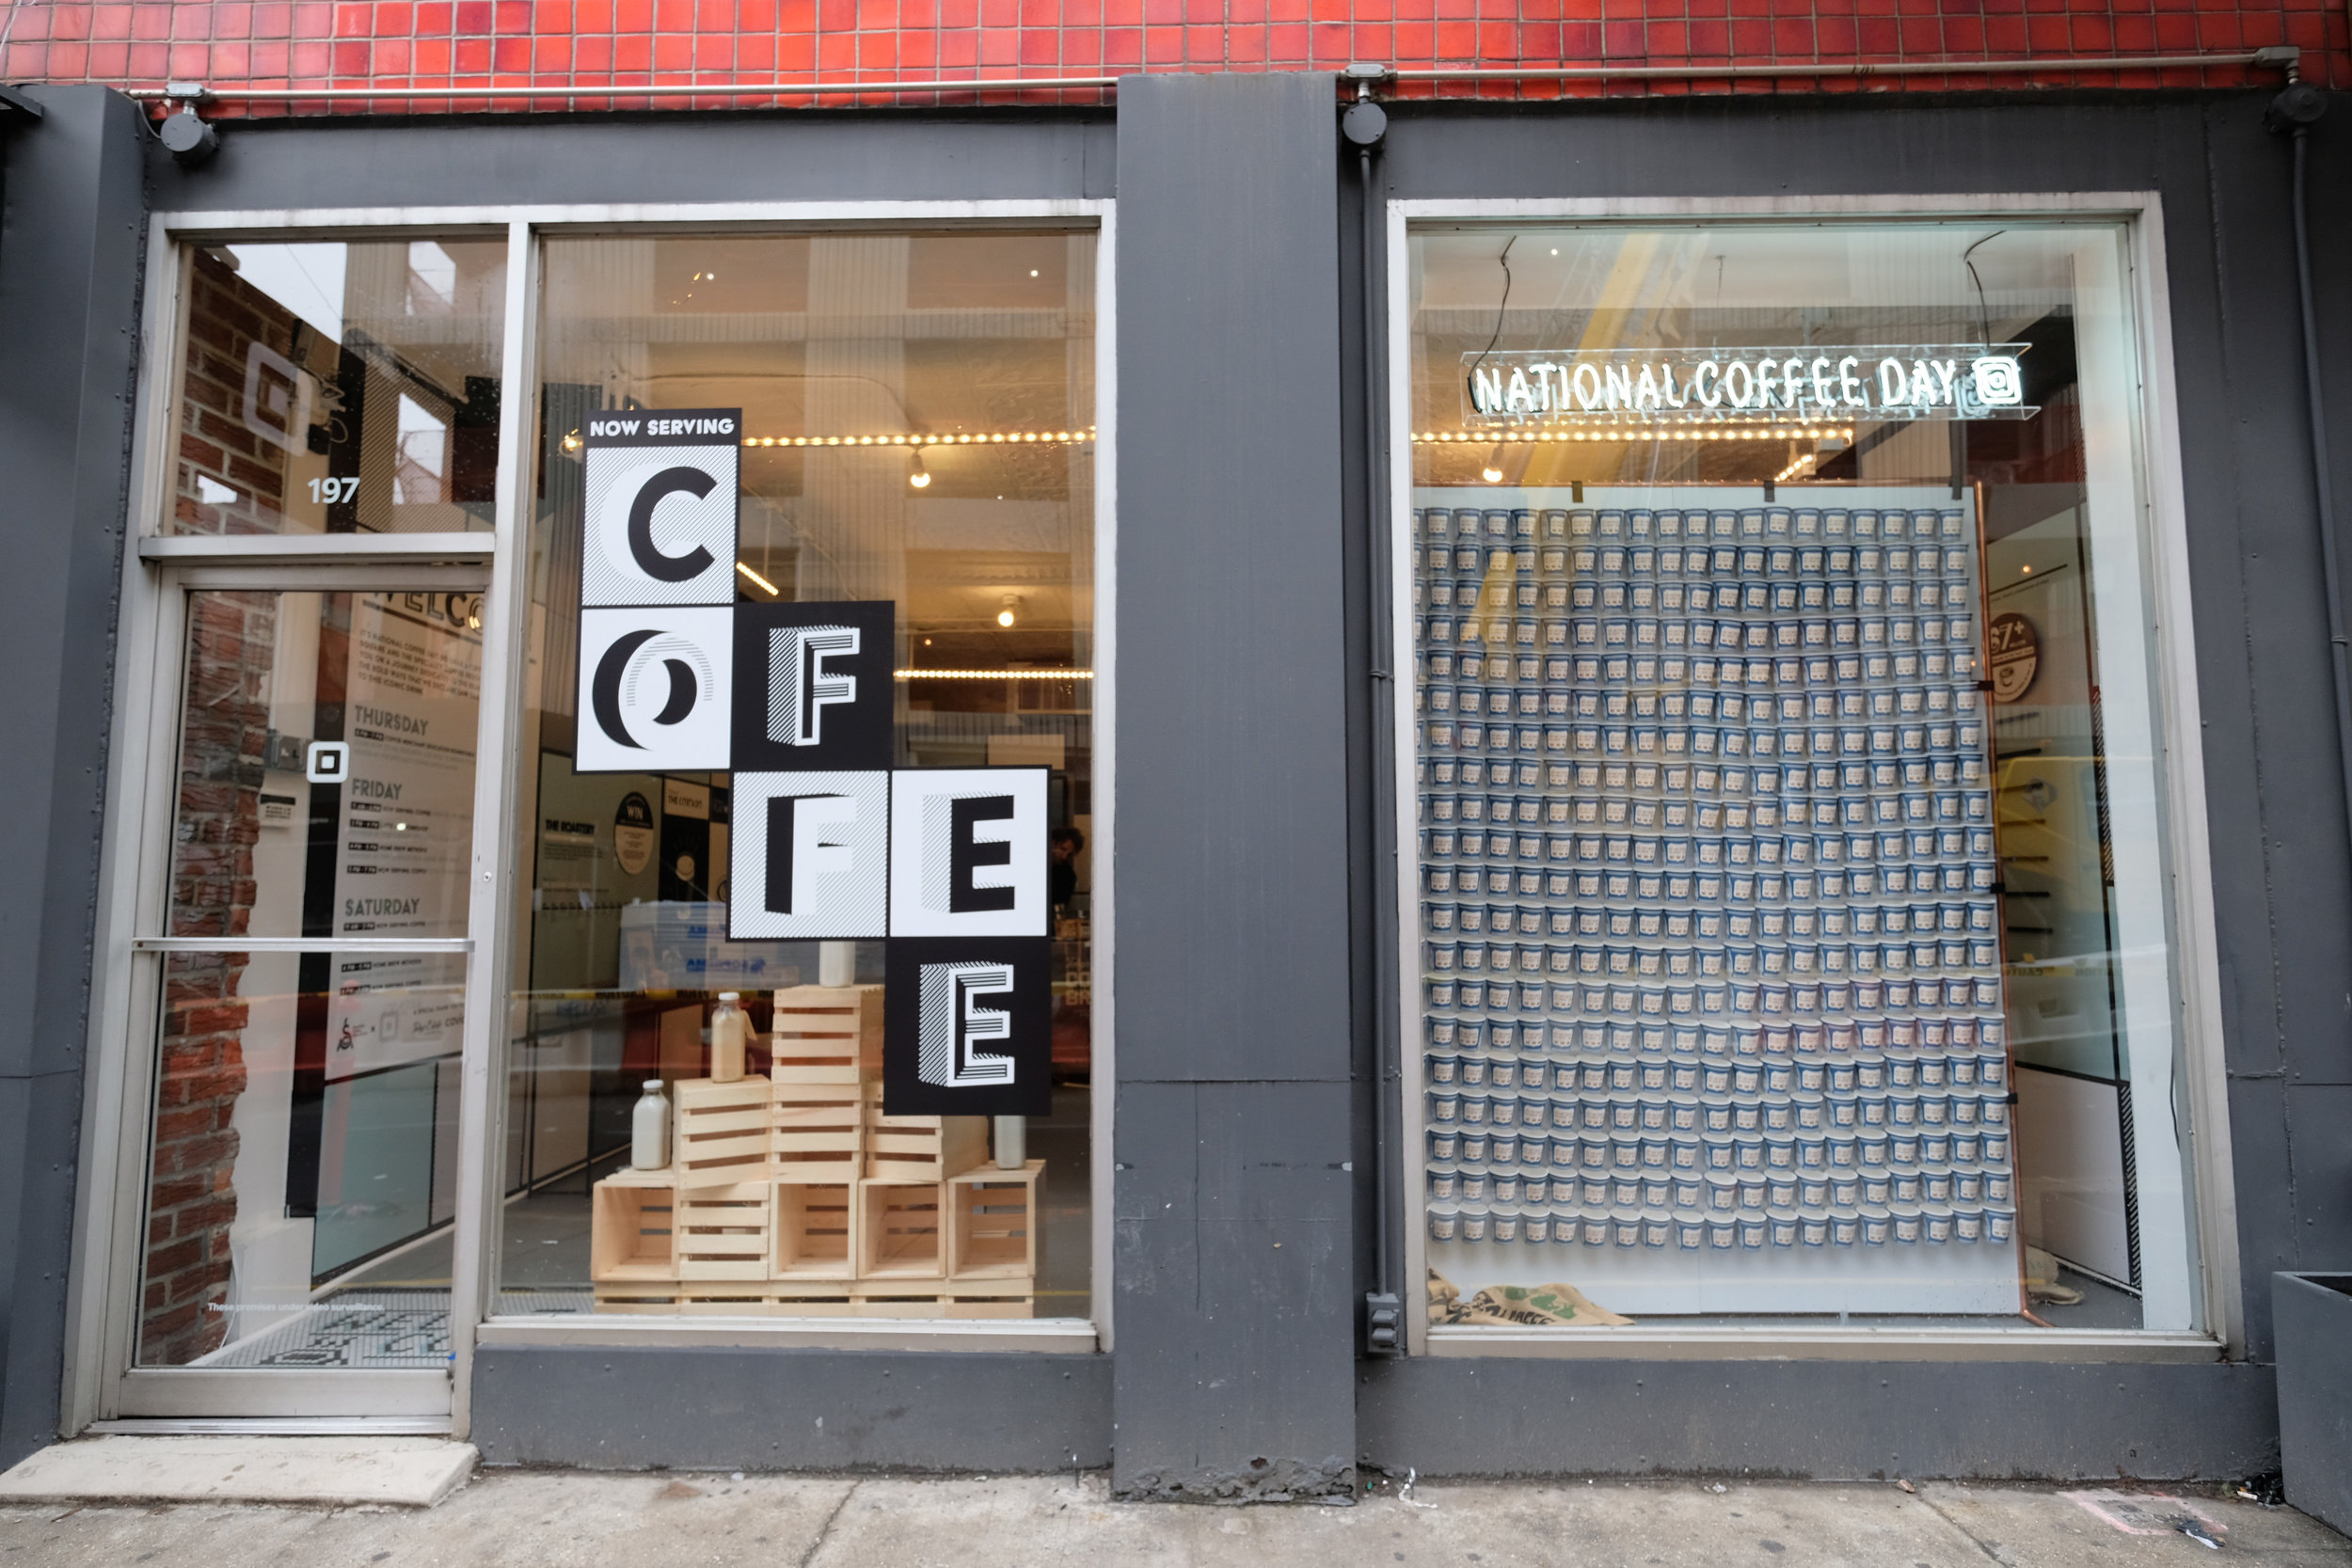 Square - Now Serving Coffee - exterior.JPG